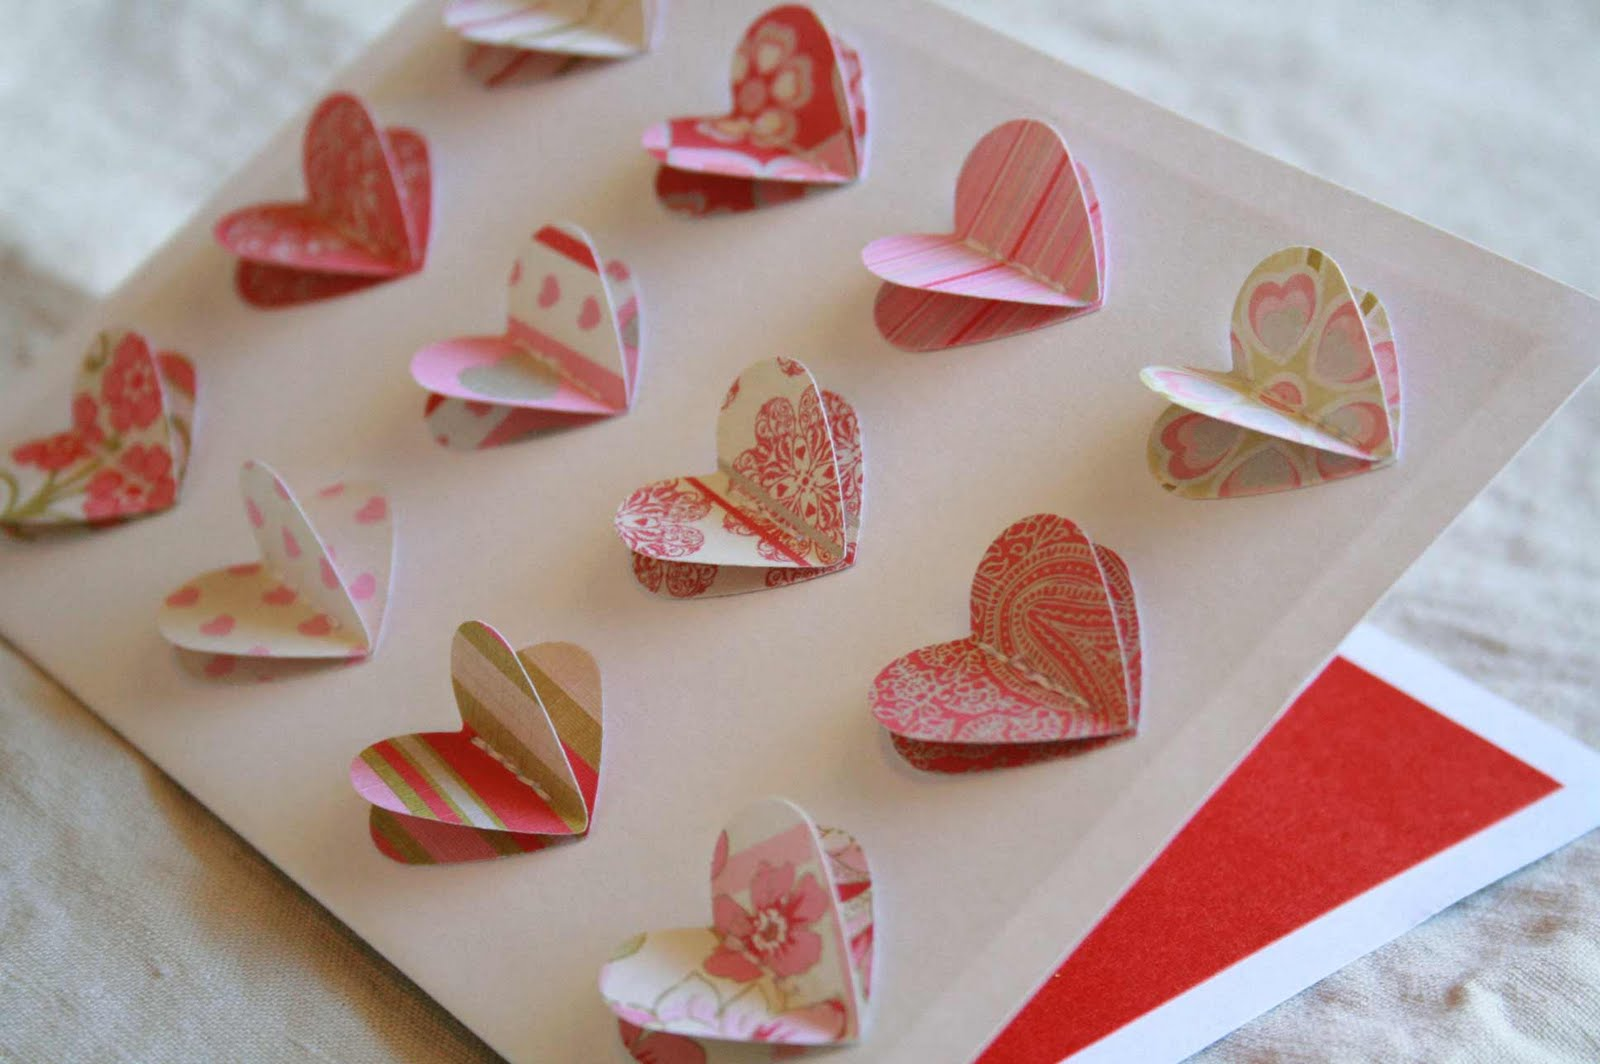 The creative place diy 3 d heart valentine card for Creative valentine day cards